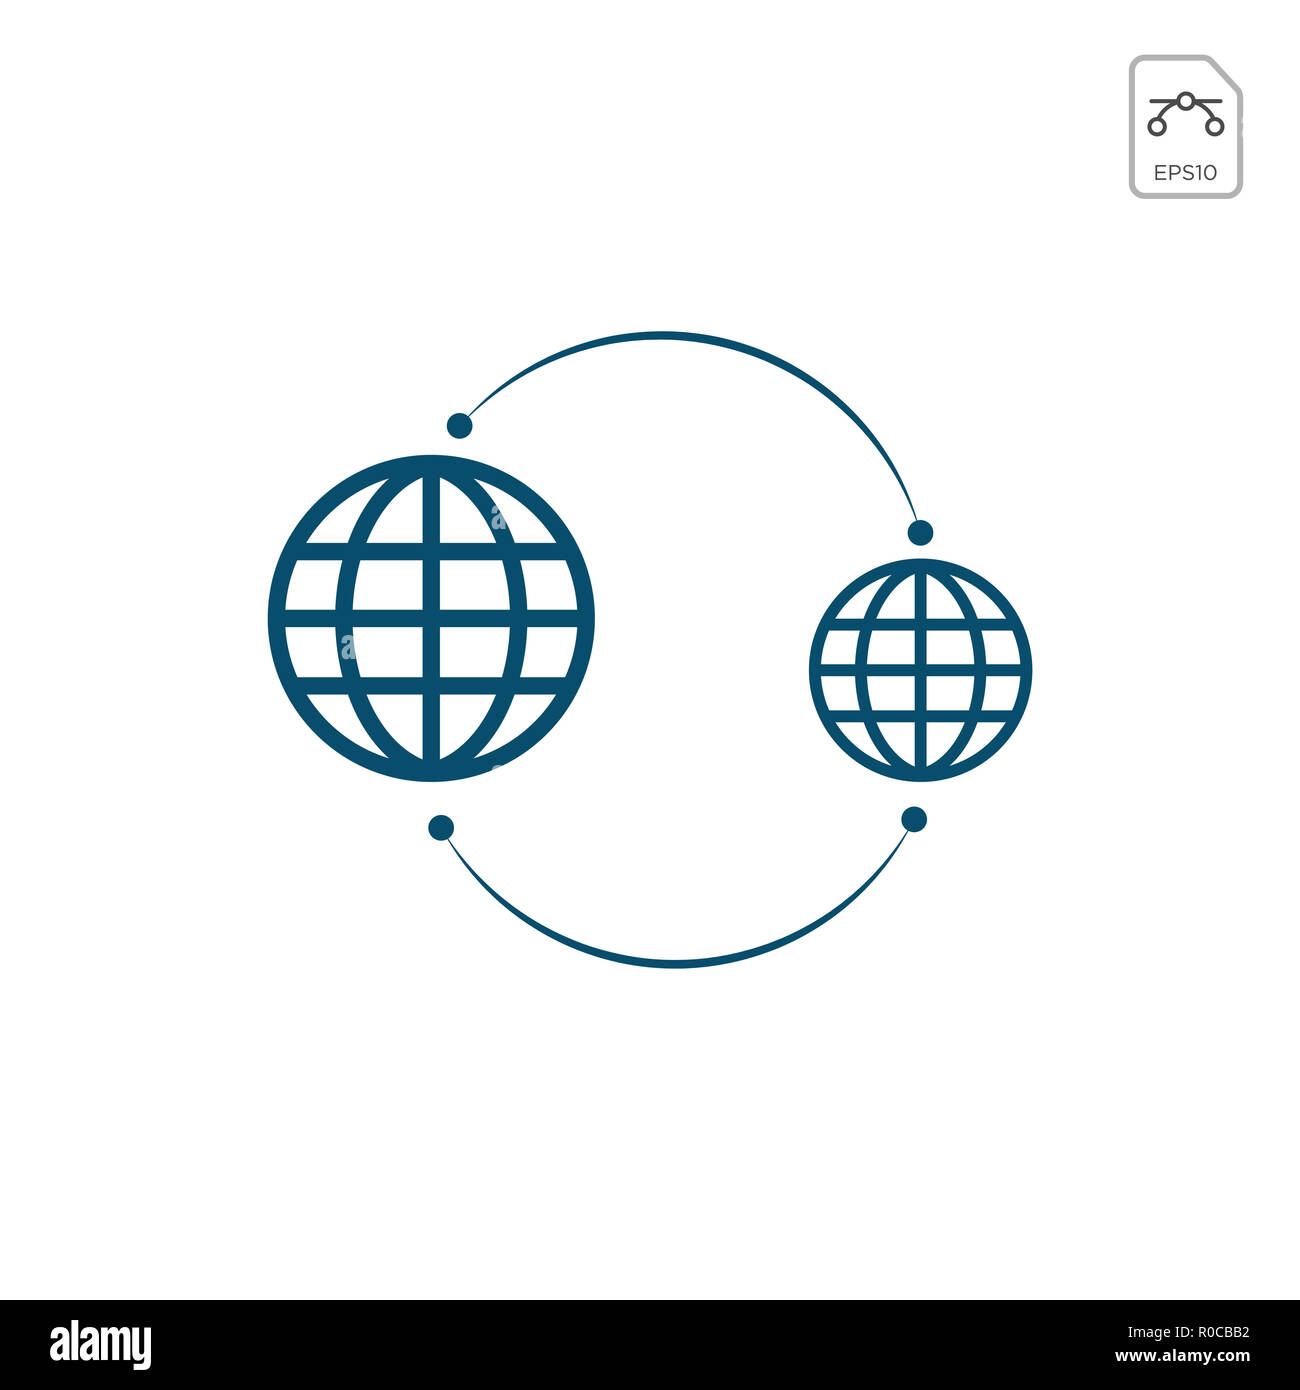 Earth globes isolated on white background. Flat planet Earth icon. Vector illustration. - Stock Image